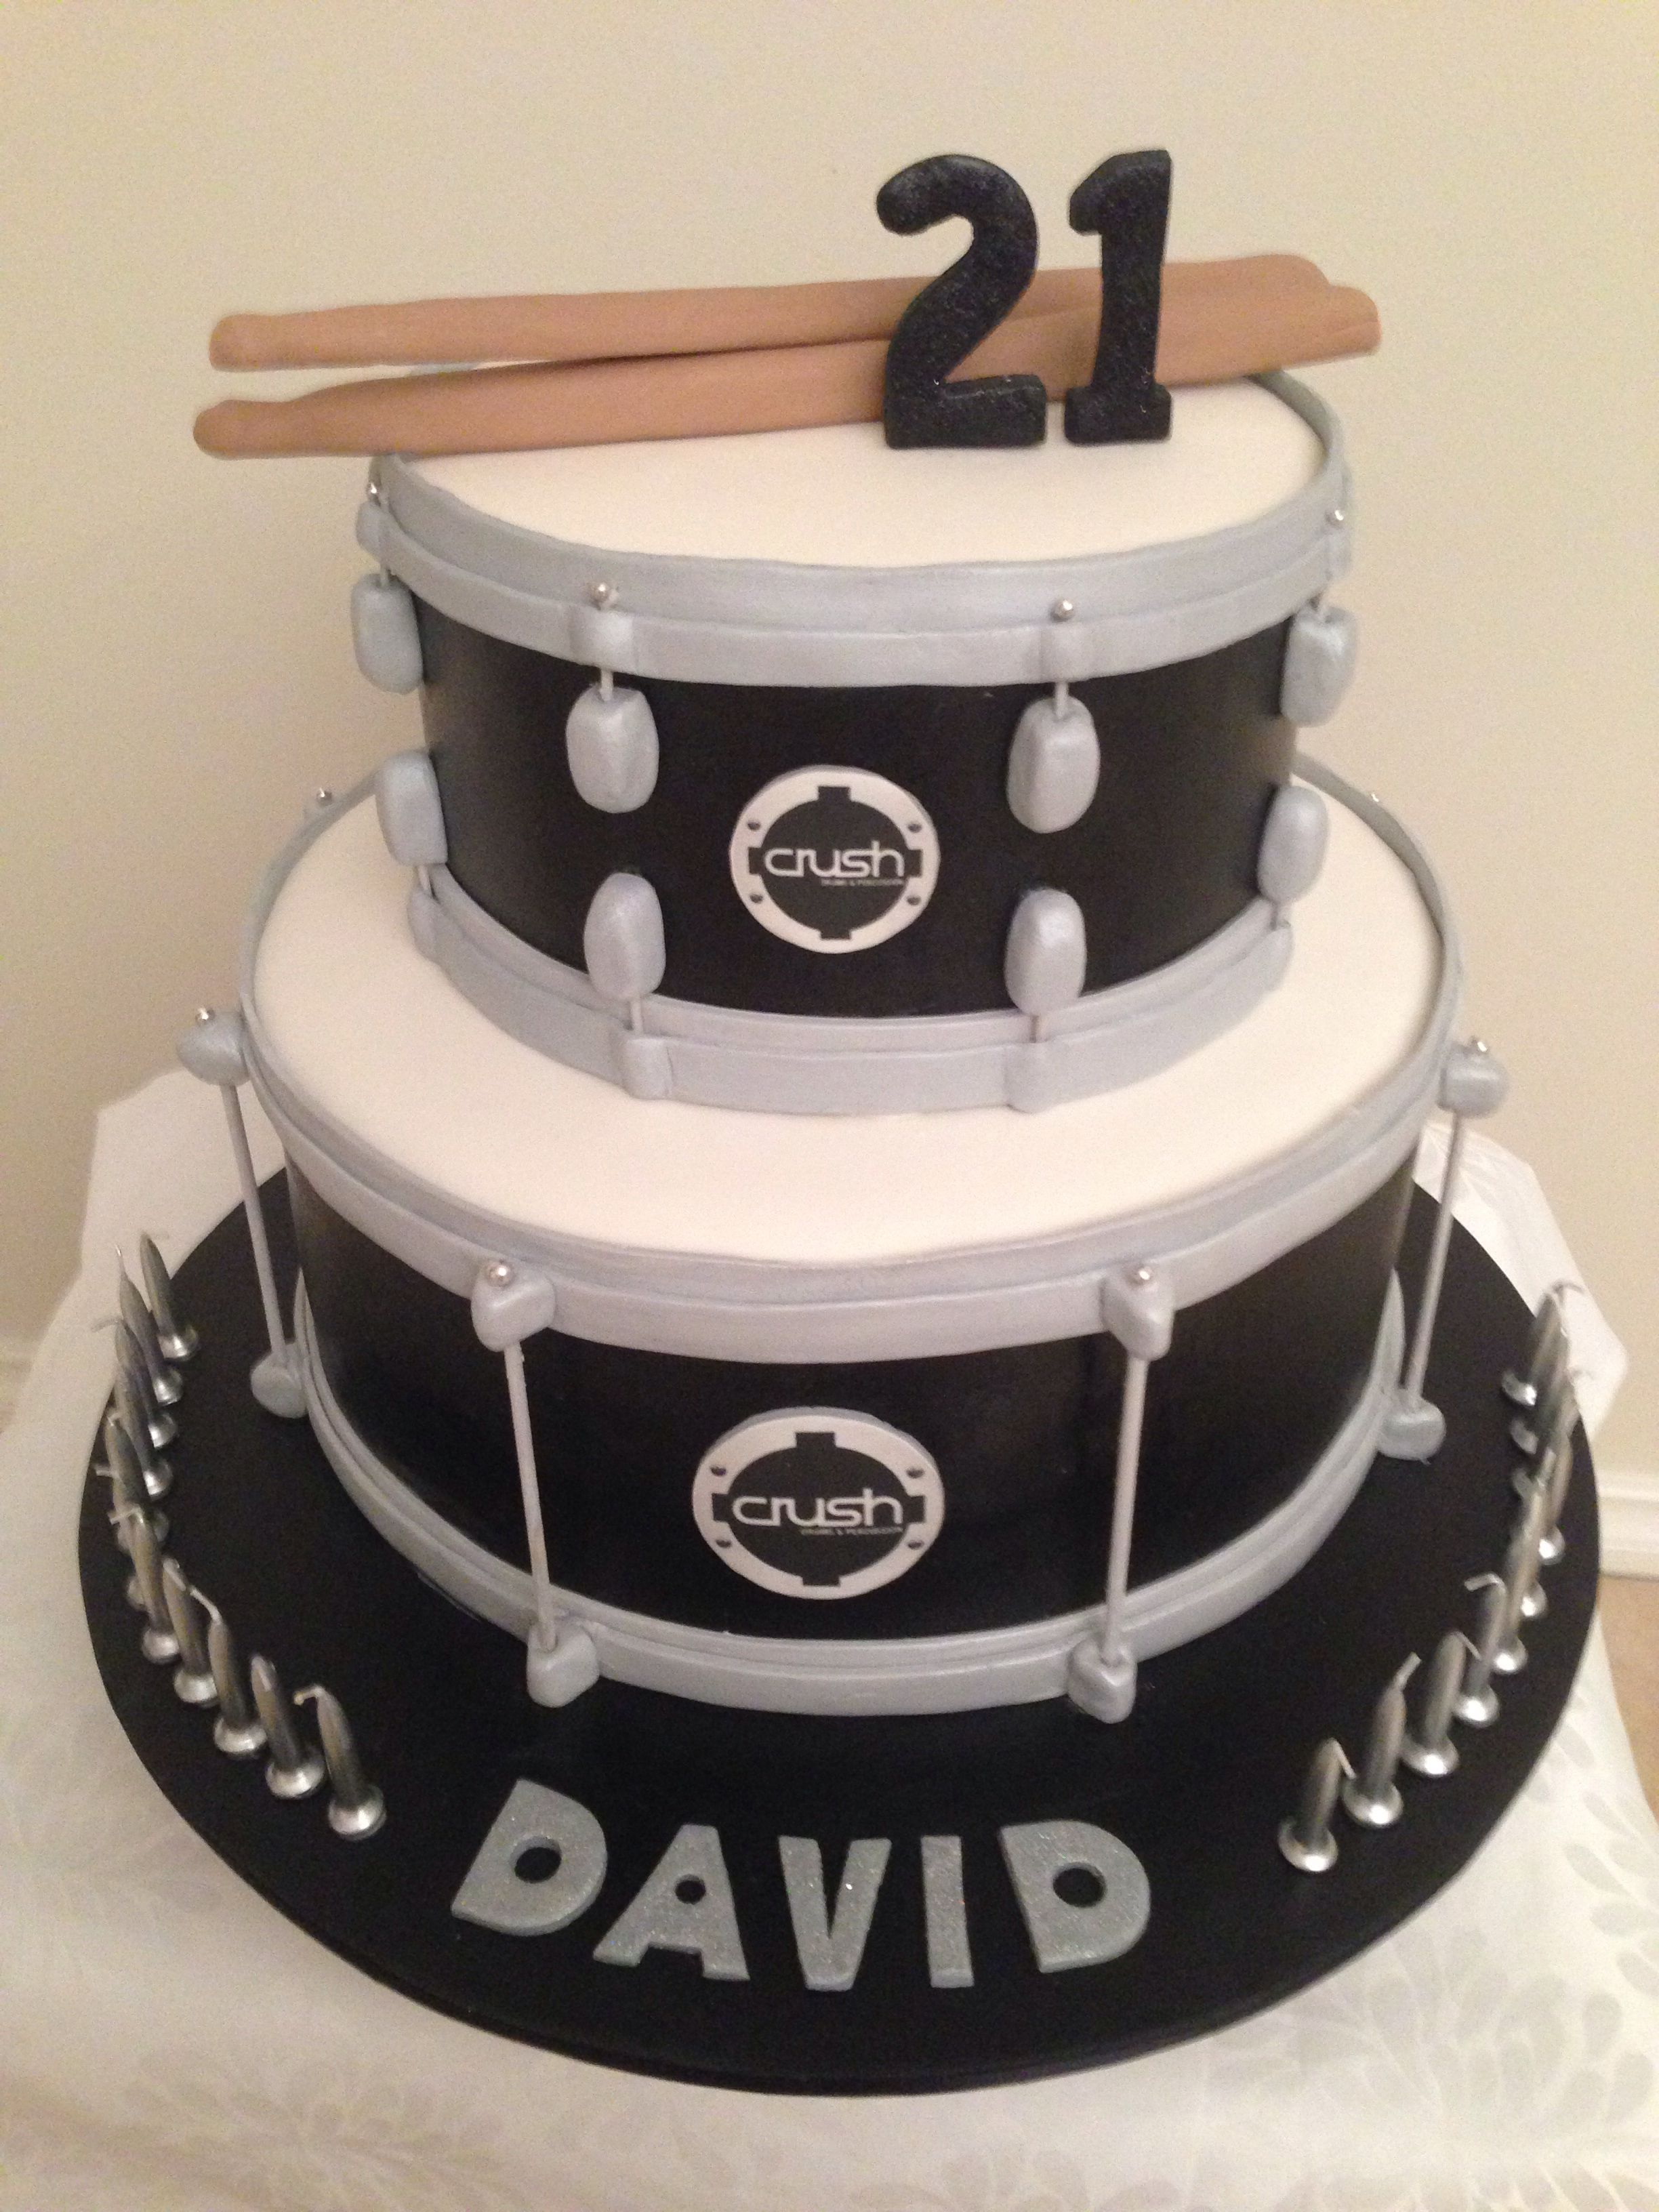 Excellent Snare Drum Cake Crush Drums By Jojo B Drum Birthday Cakes Personalised Birthday Cards Veneteletsinfo